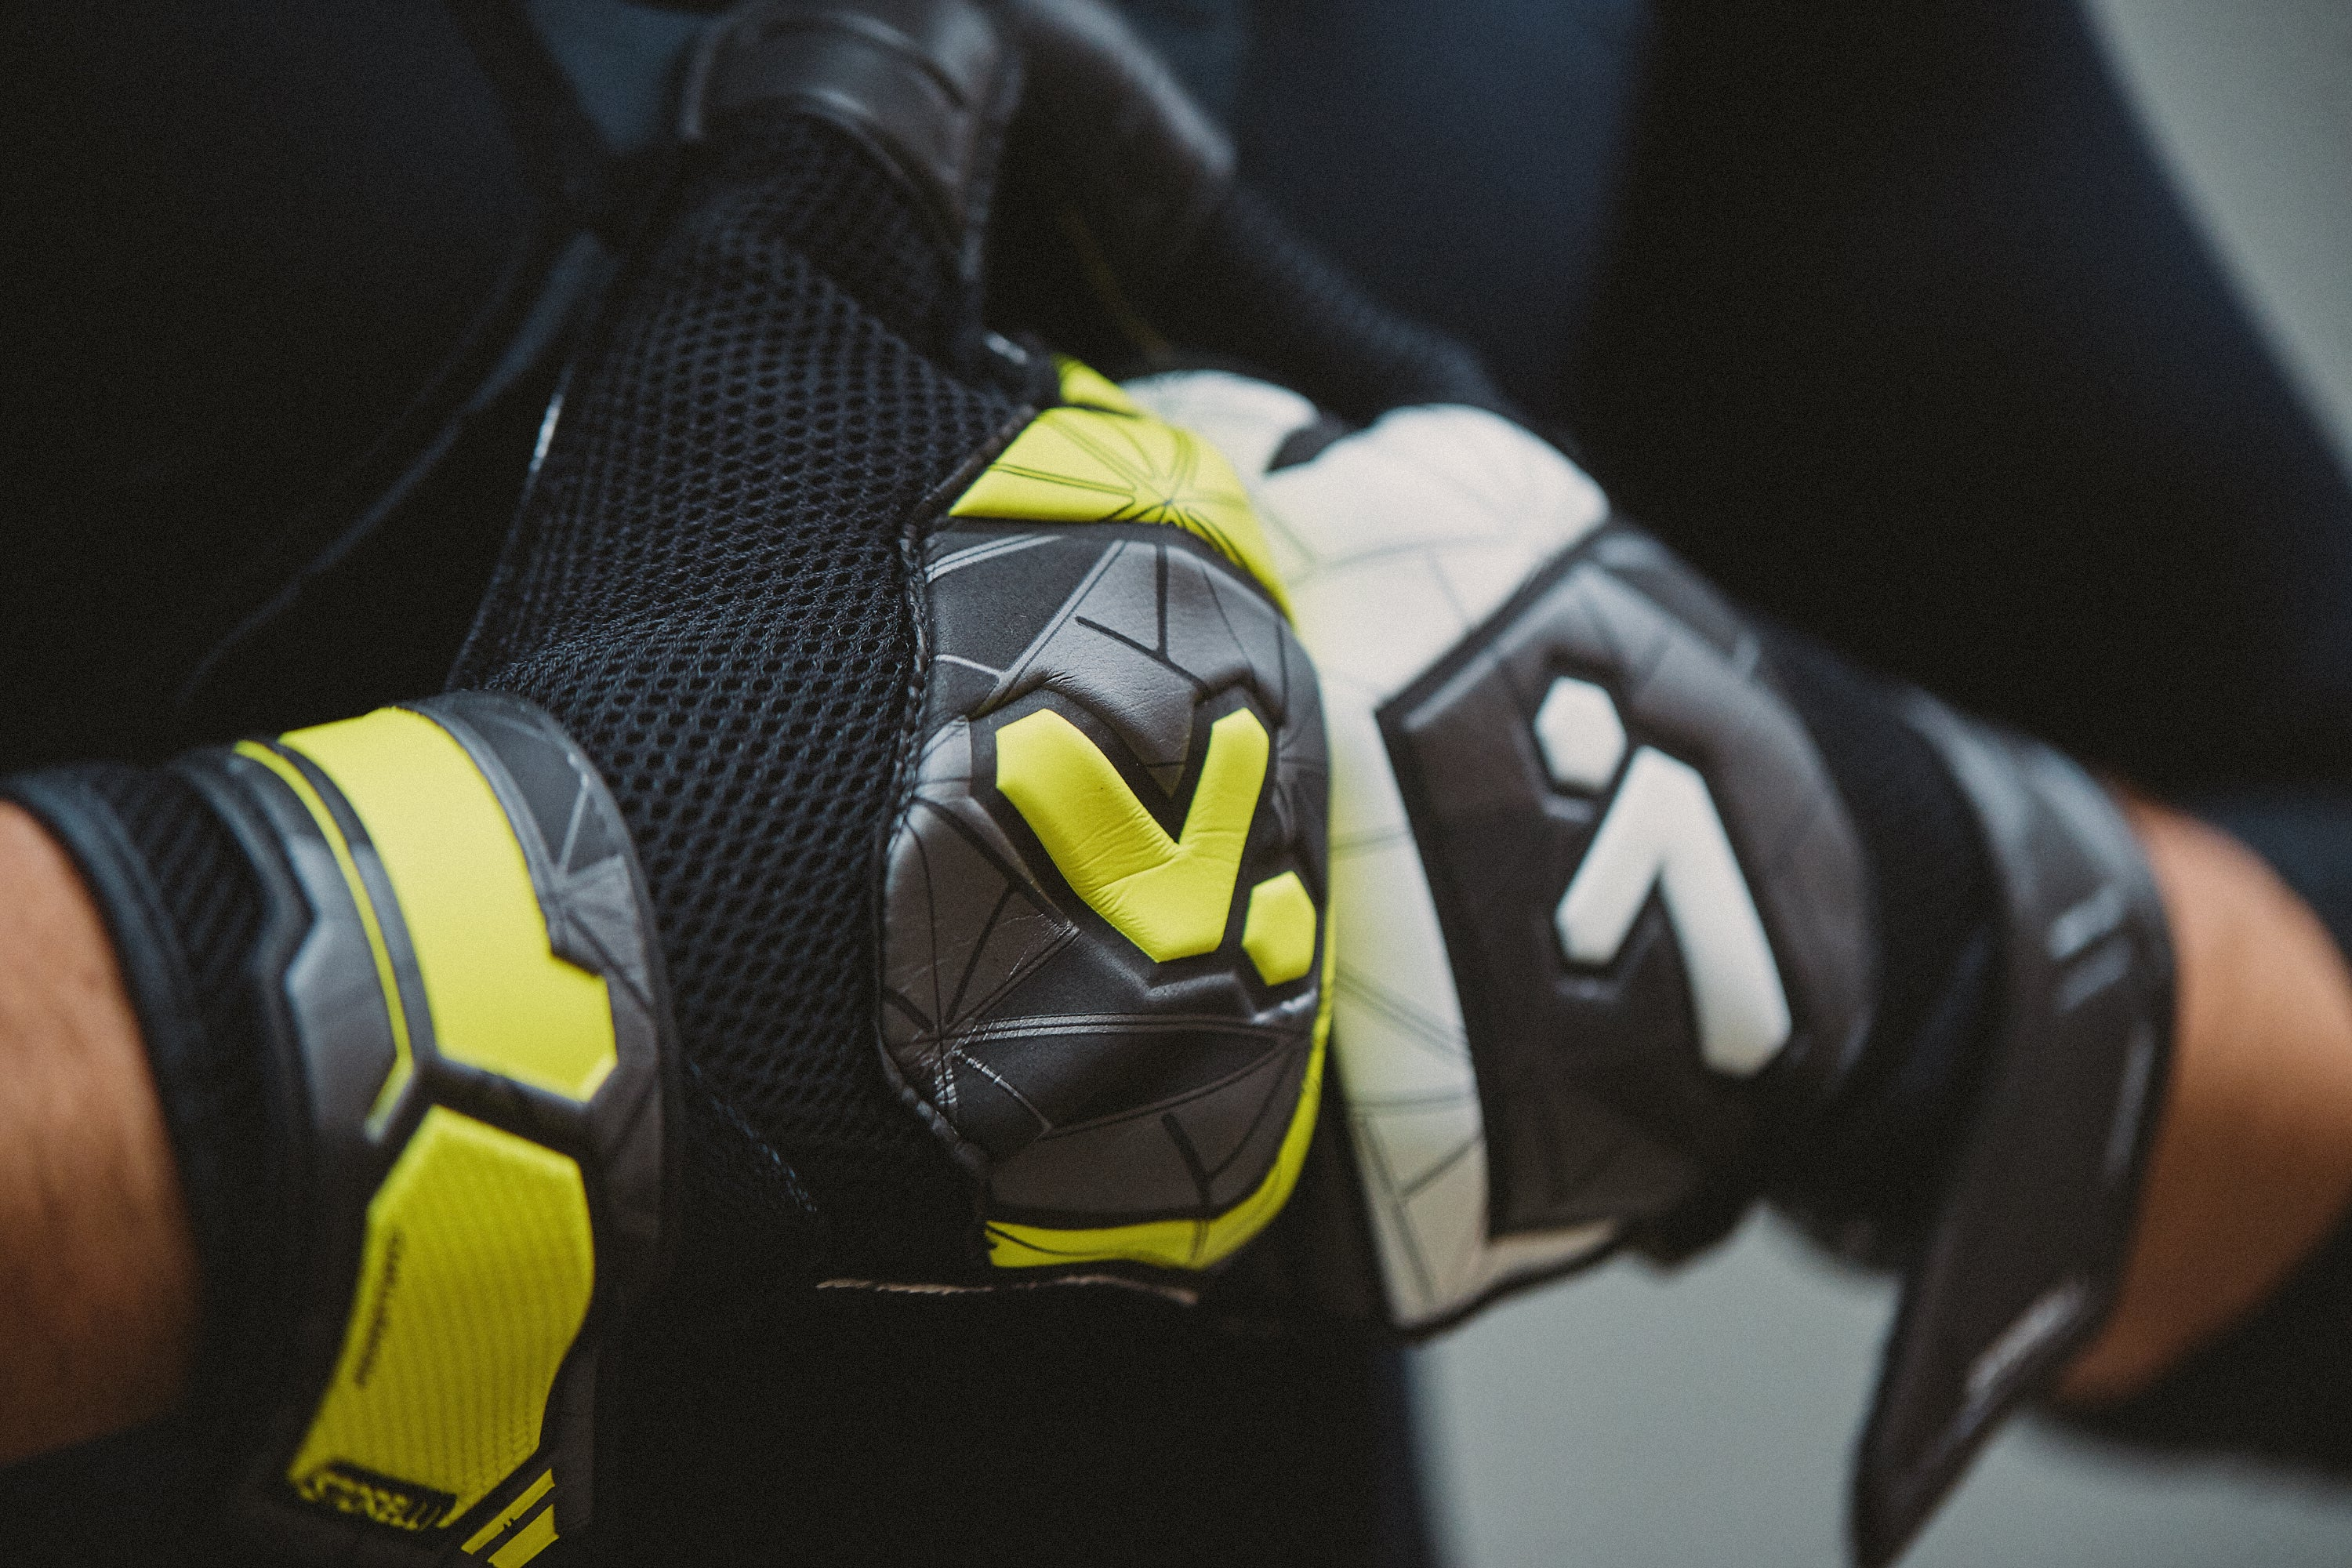 Our Challenger goalkeeper gloves are great starters for beginner & youth soccer players.